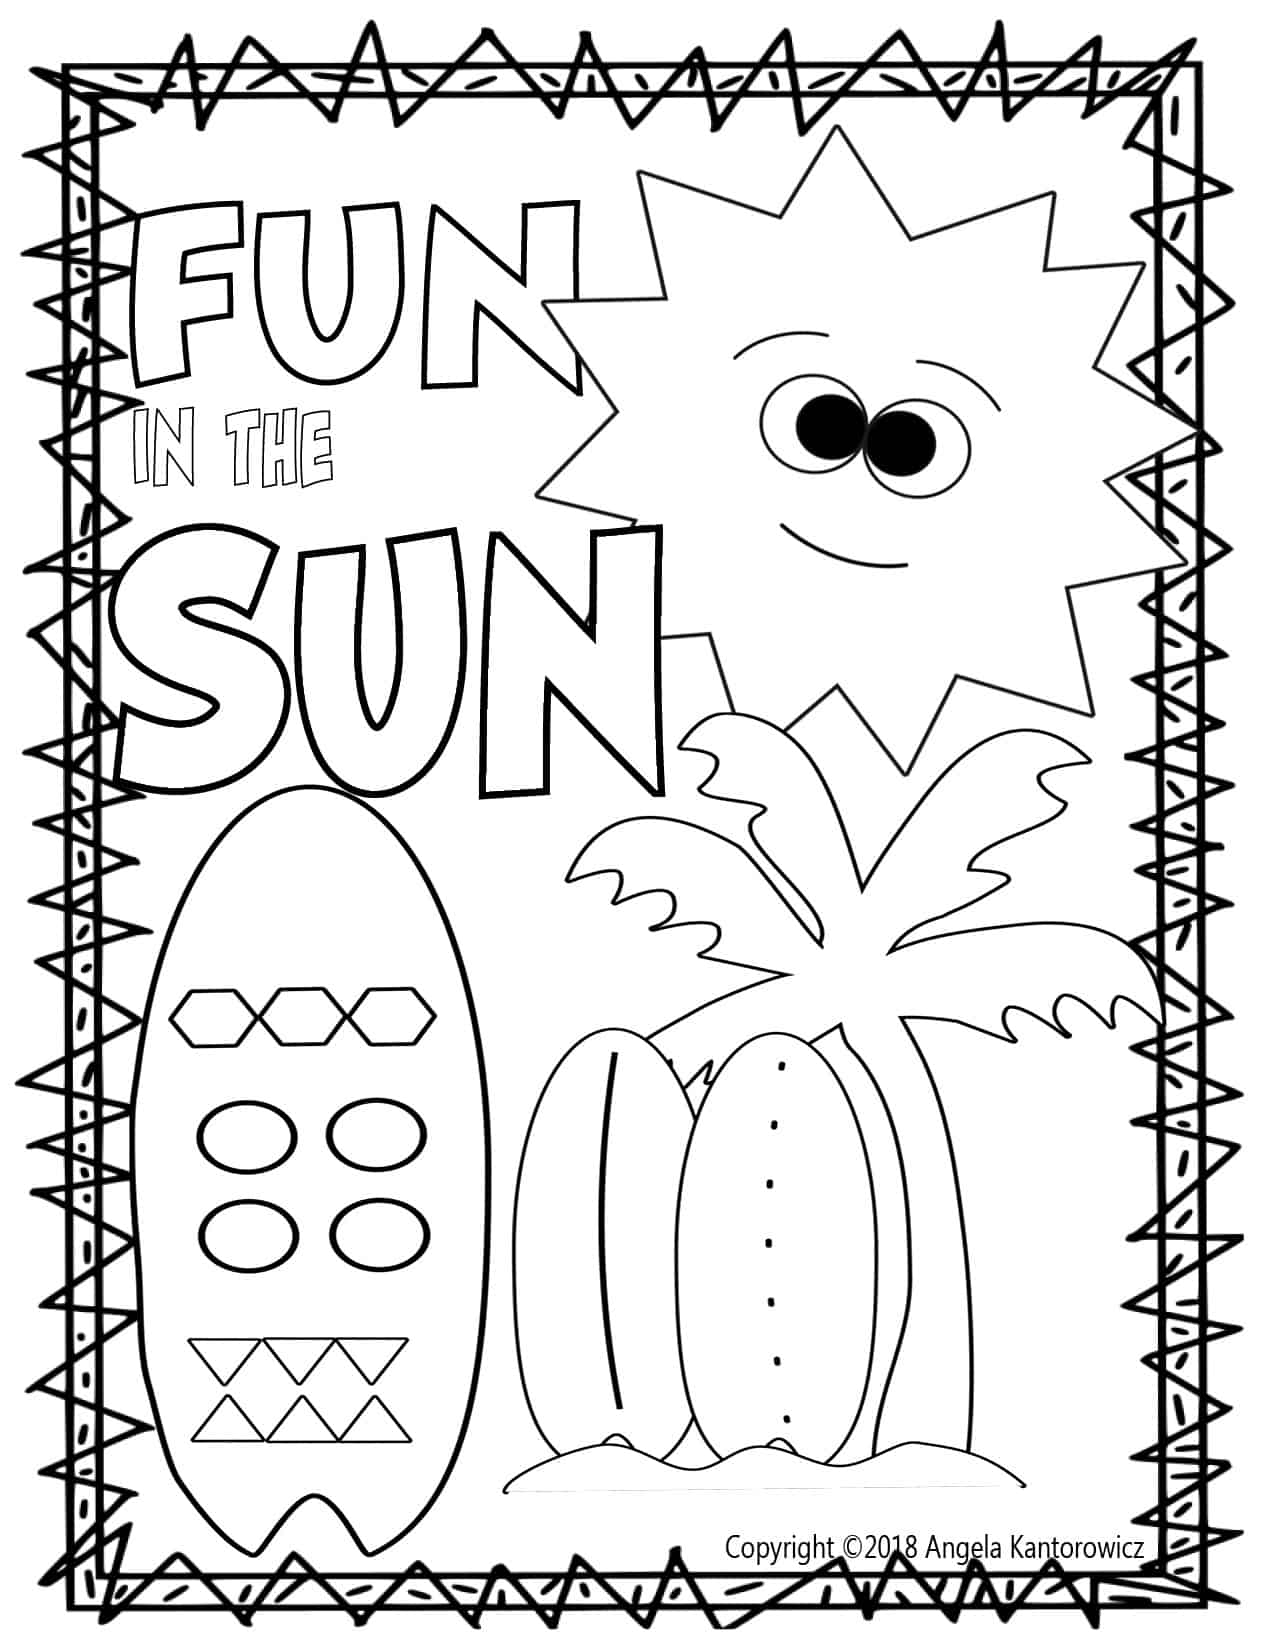 Fun In The Sun Color Sheet